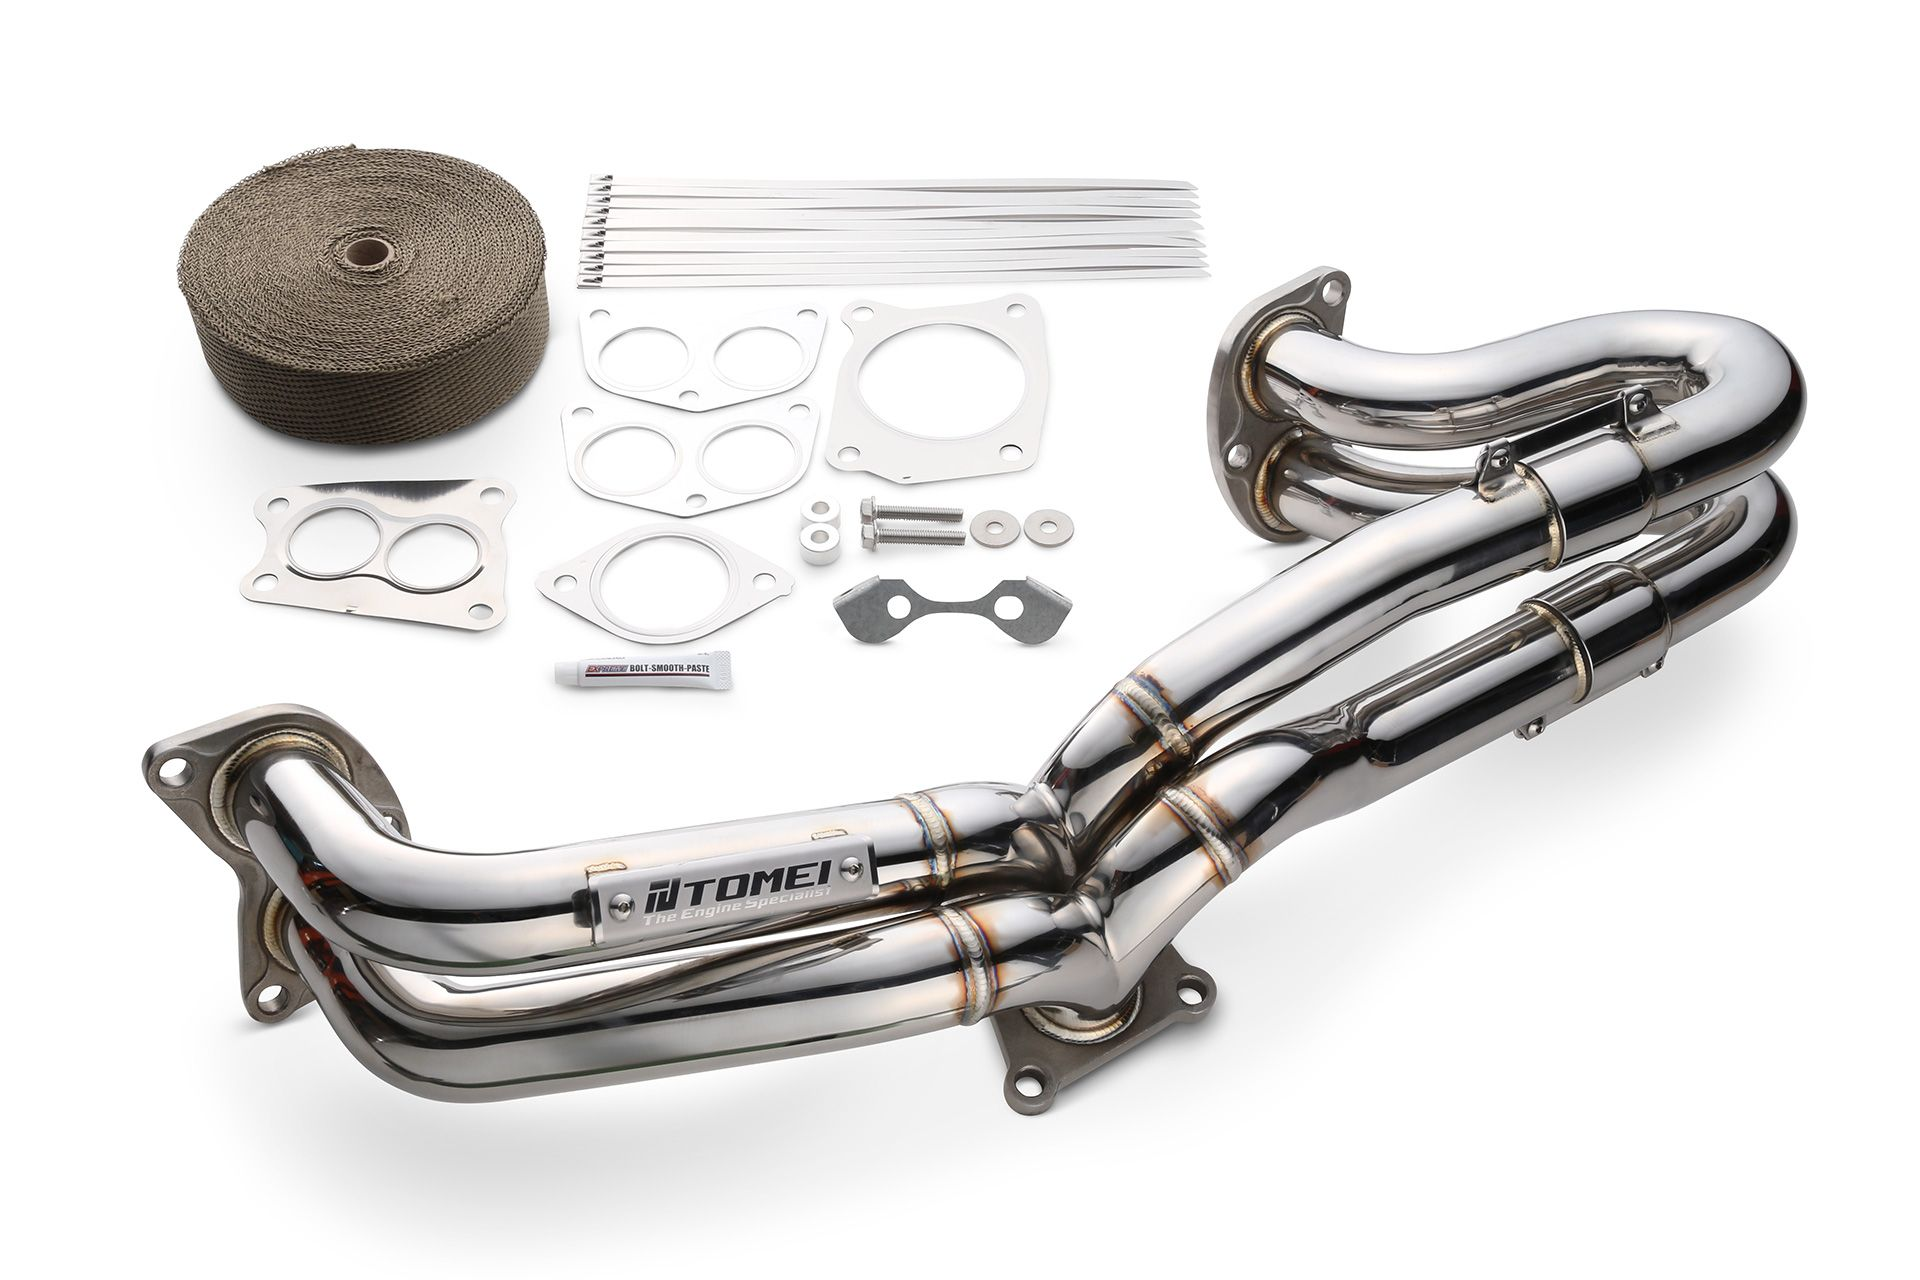 Tomei Expreme Unequal Length Exhaust Manifold - Subaru WRX 2015+ FA20DIT